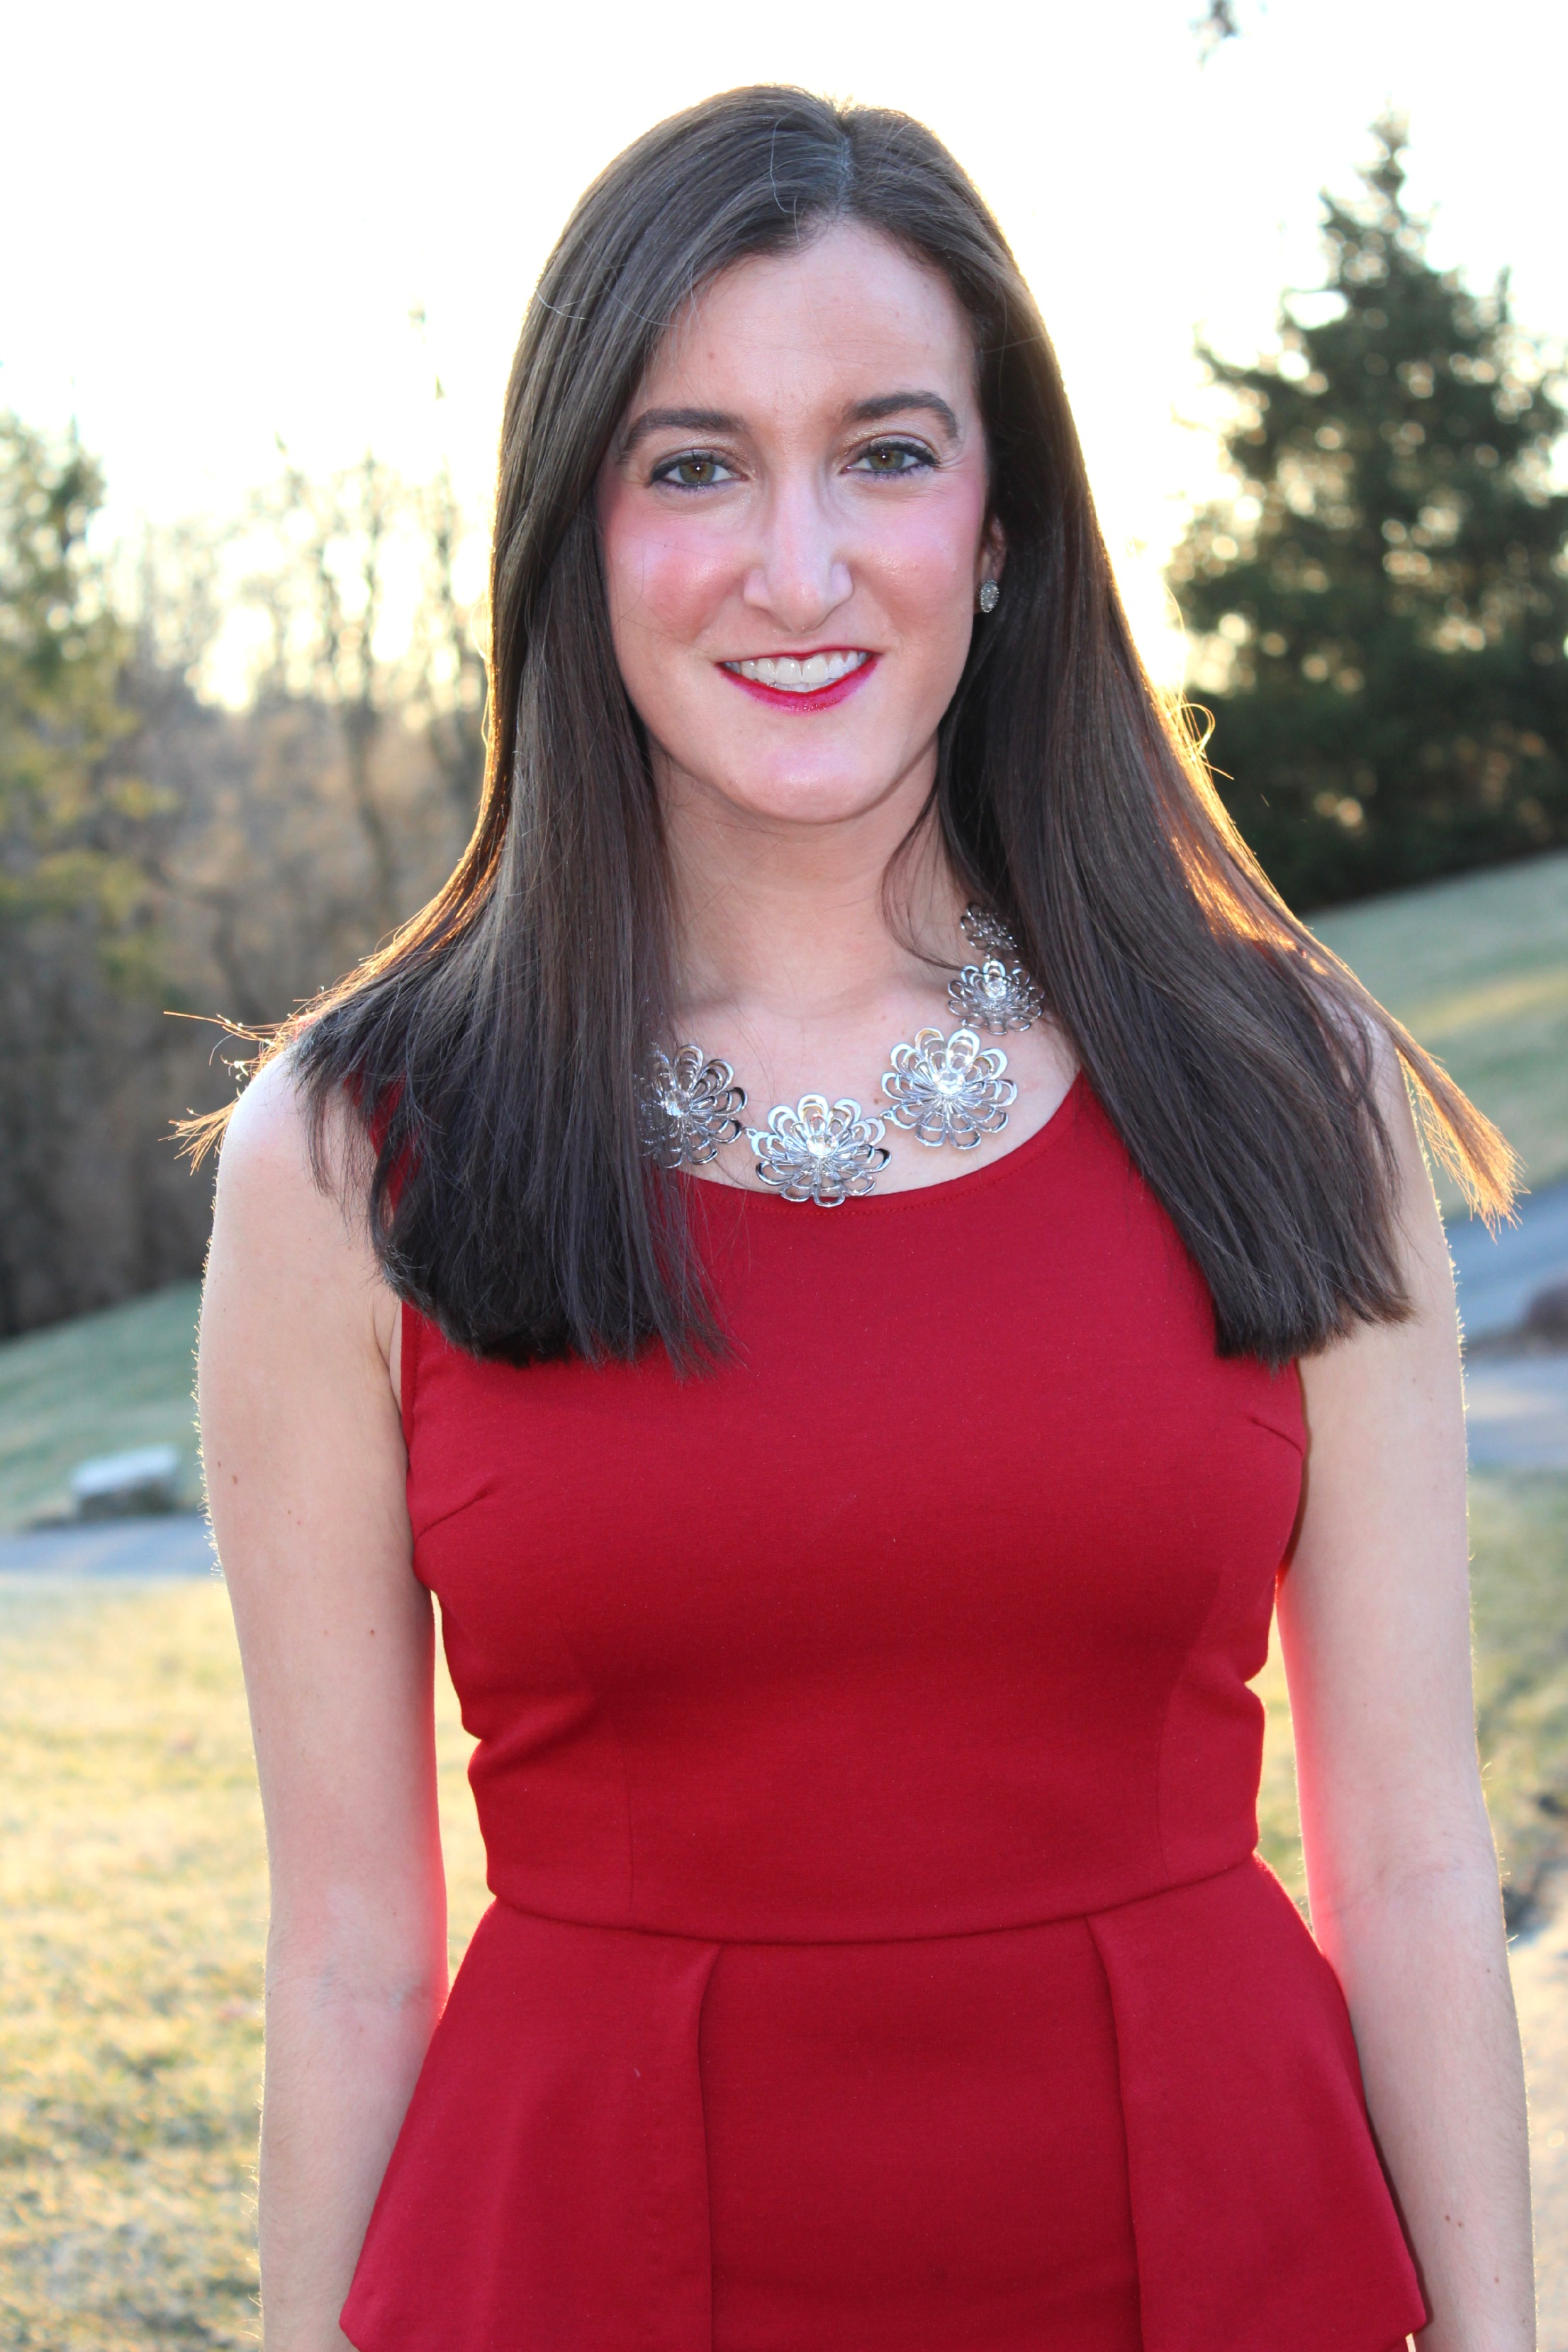 Red Peplum Dress Kate Spade Necklace